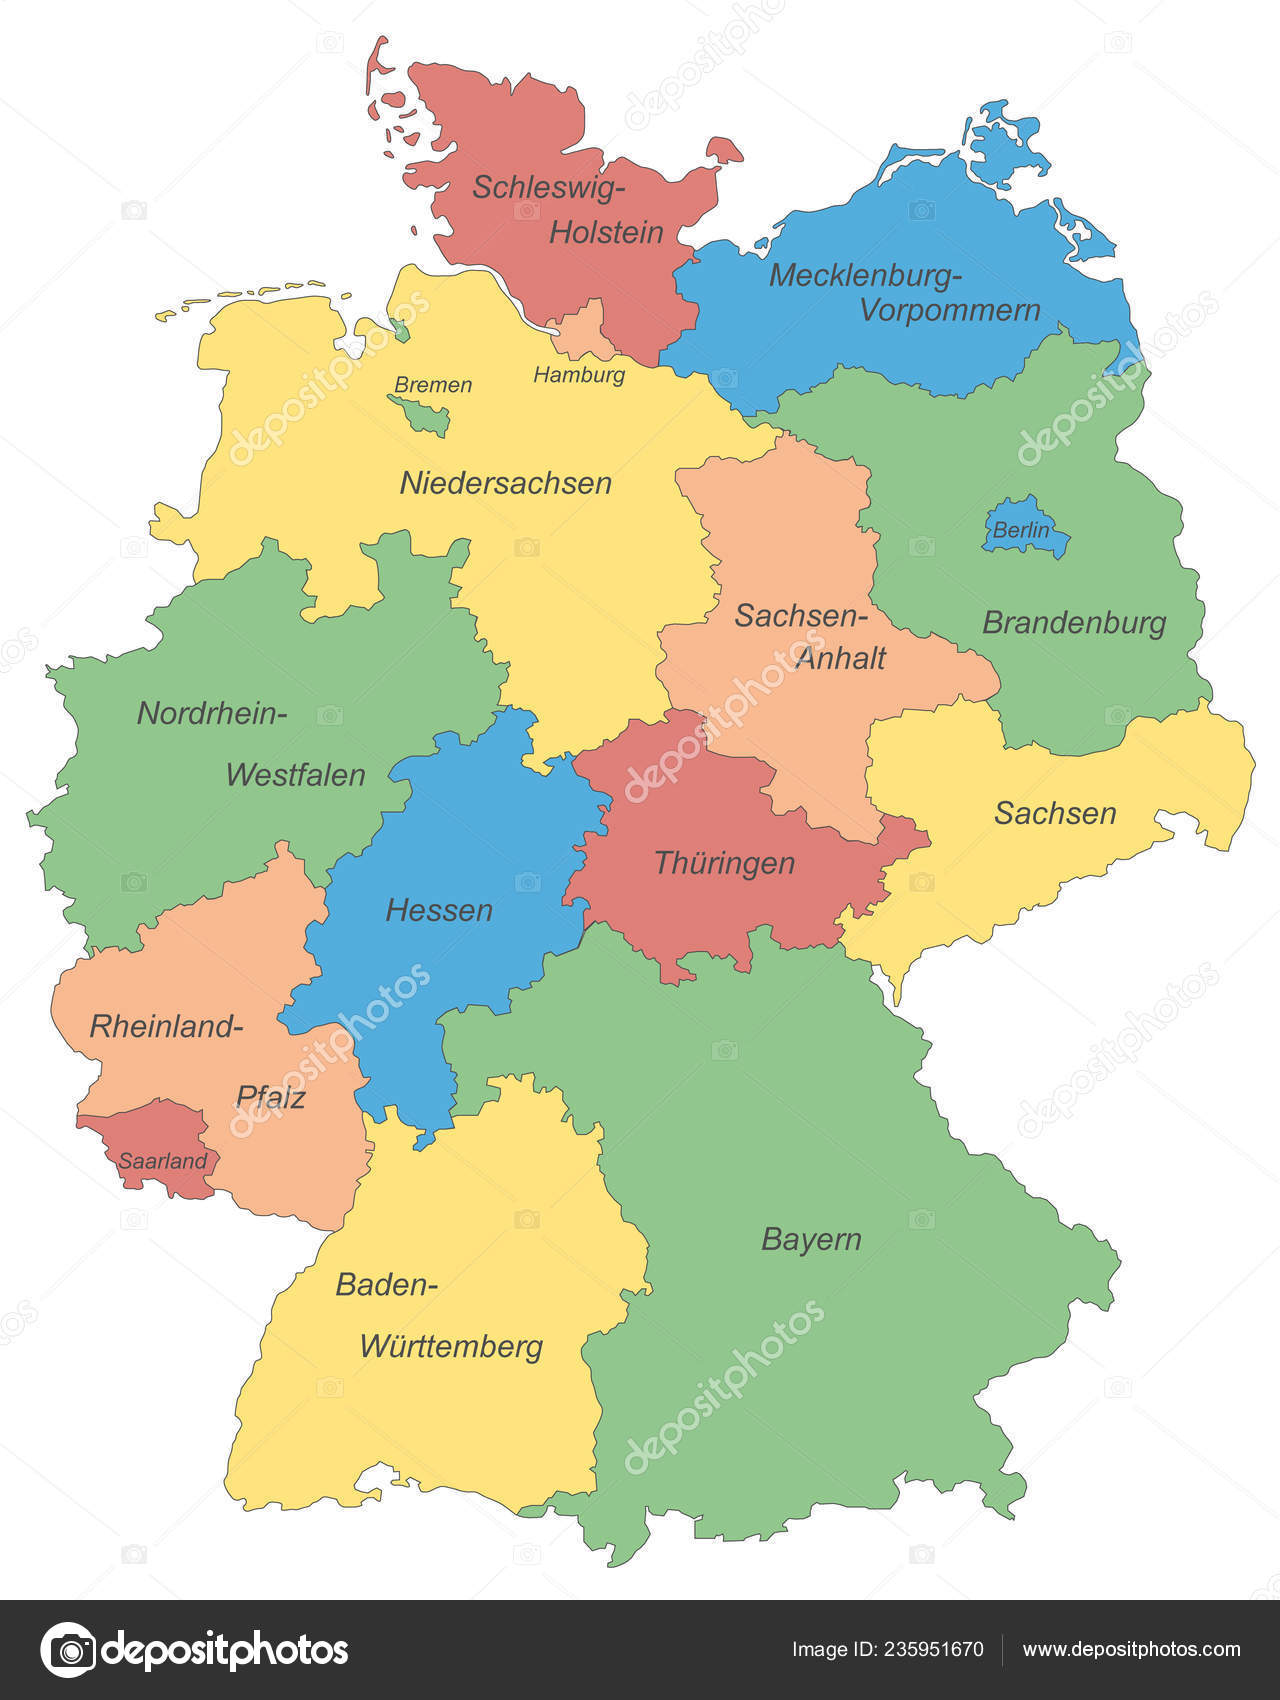 Detailed Map Of Germany.Germany Map Germany High Detailed Stock Vector C Ii Graphics